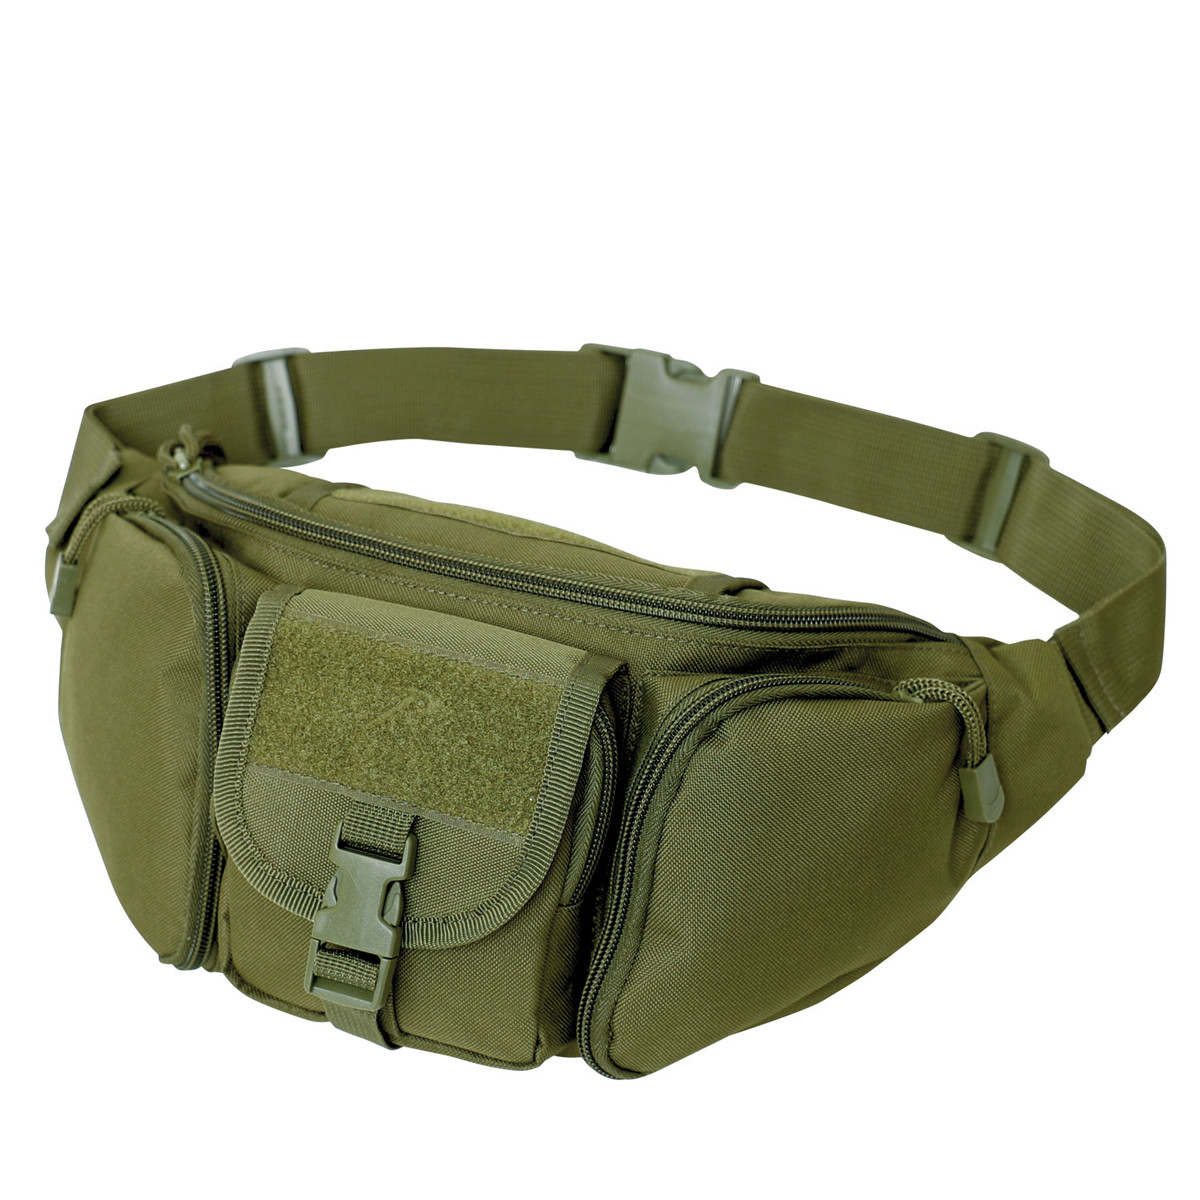 31b21d7f50cf Rothco Olive Tactical Concealed Carry Waist Pack